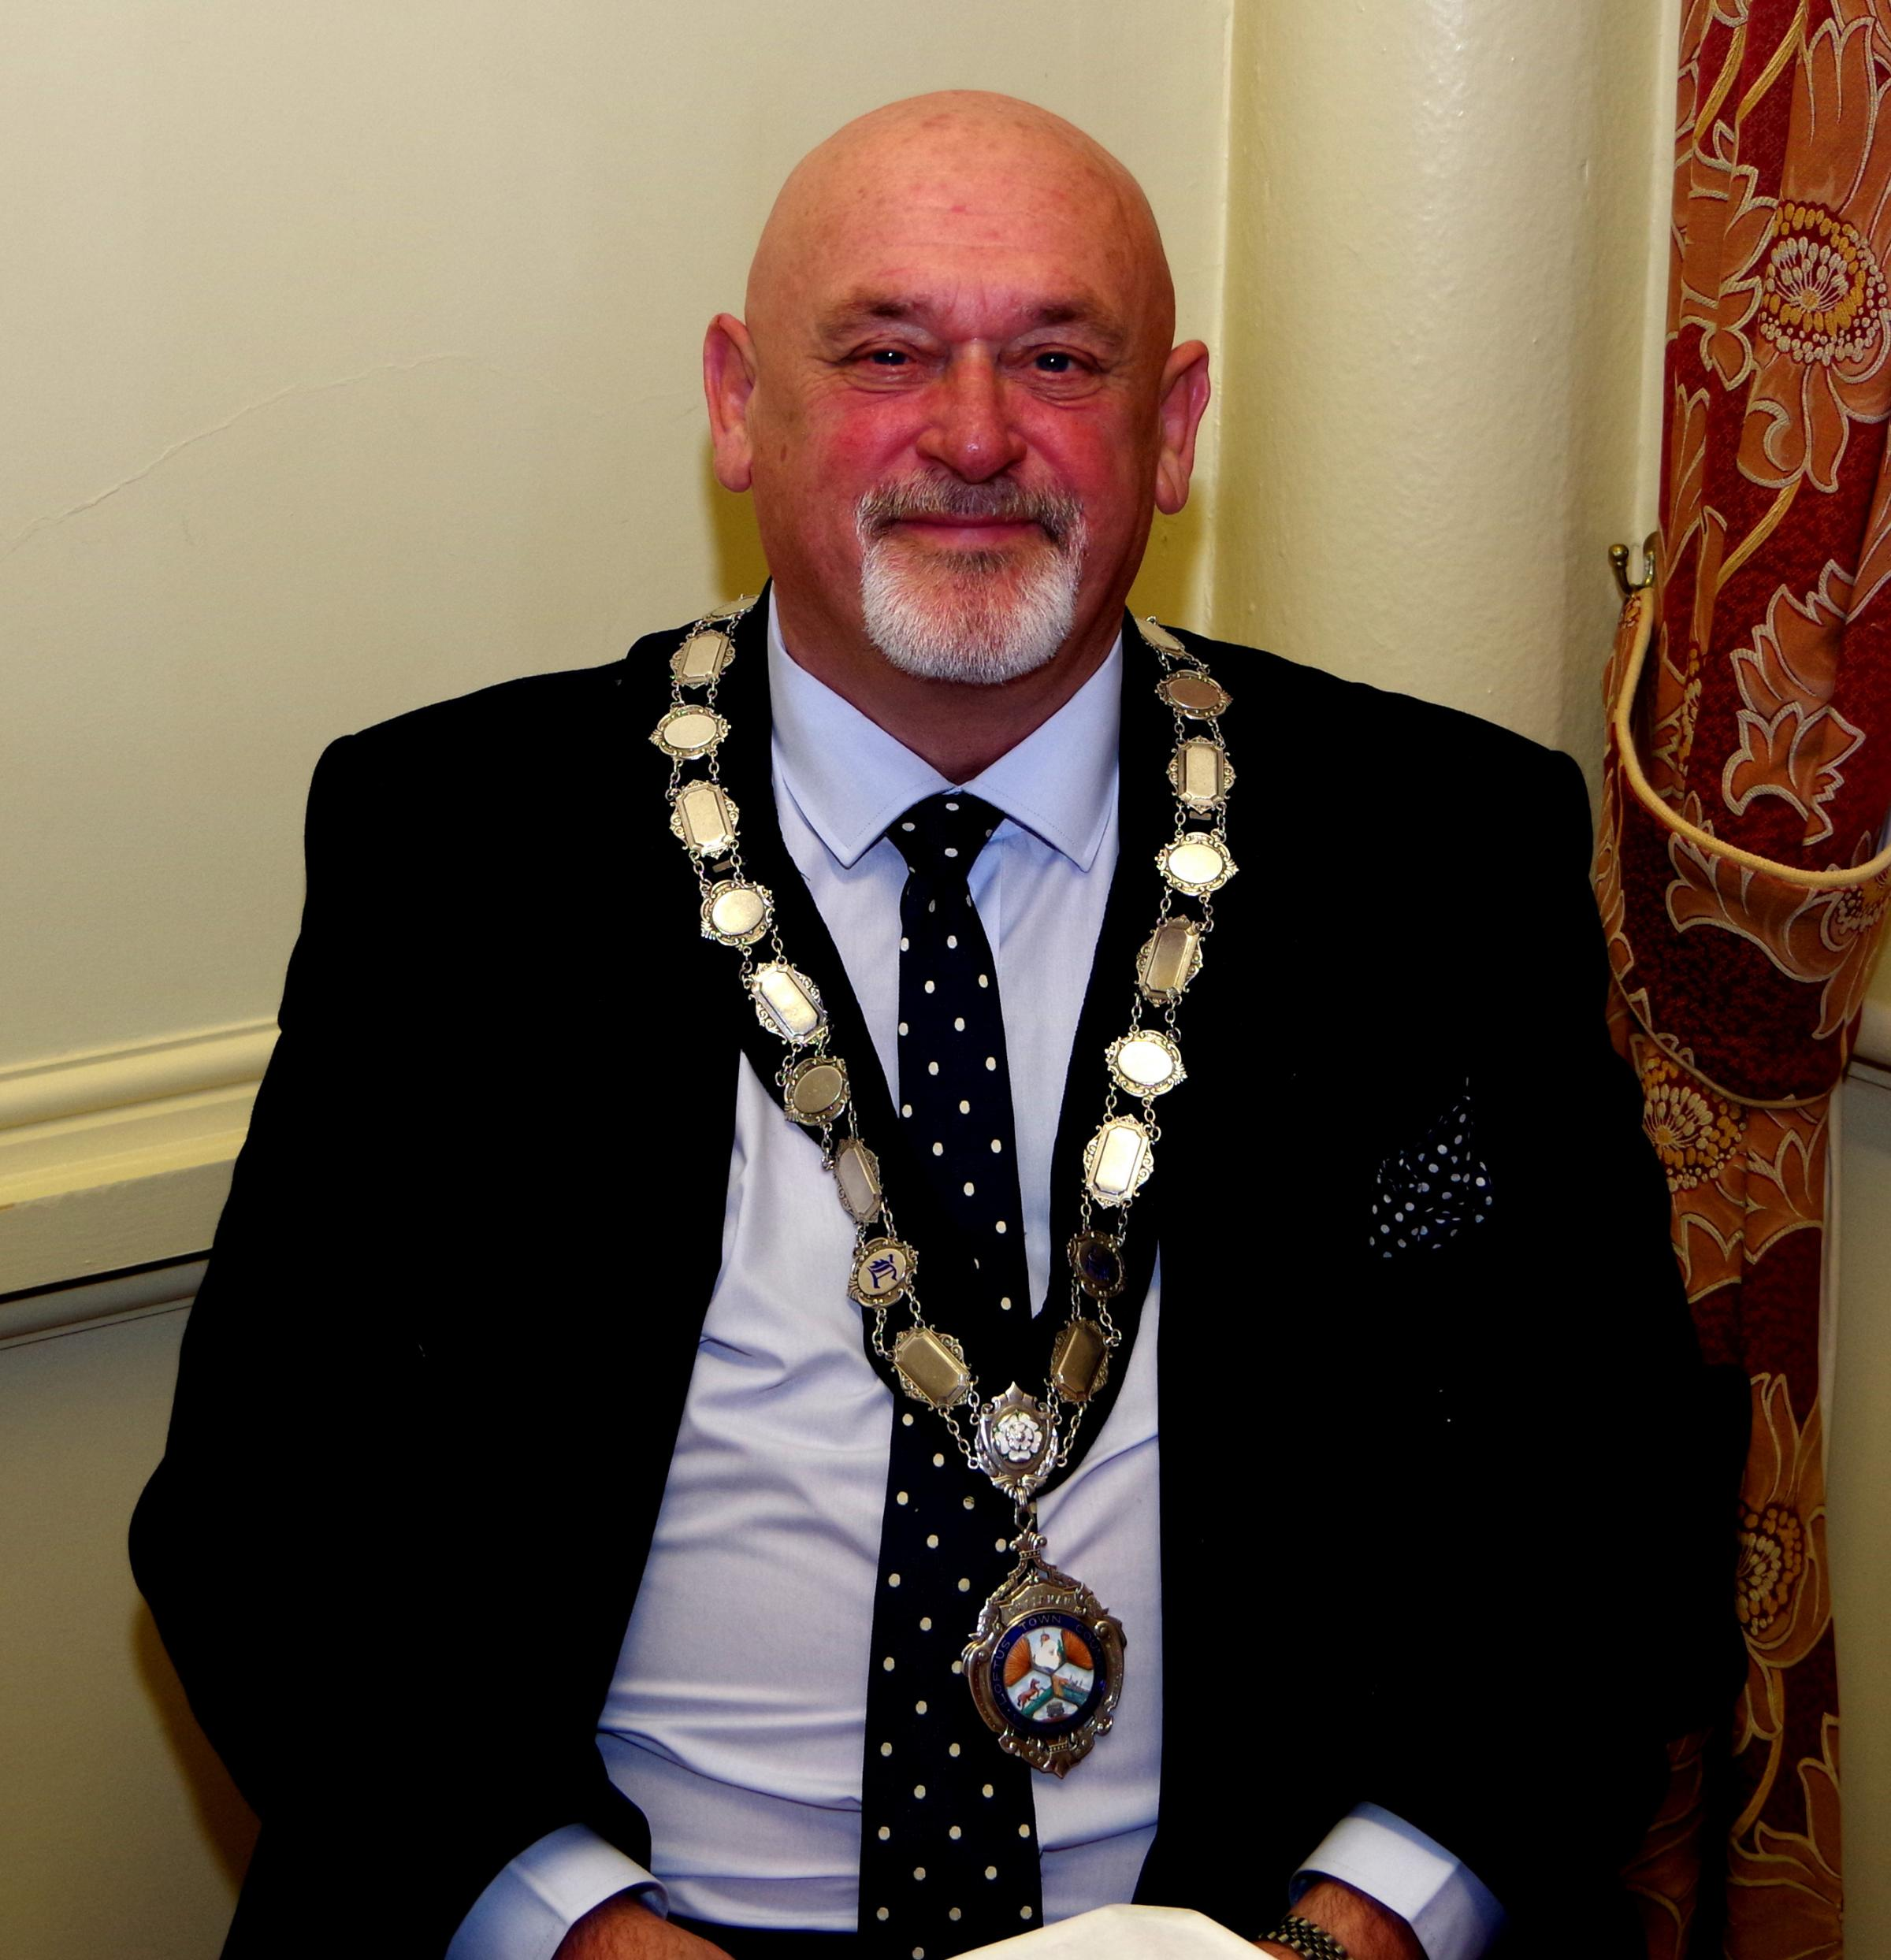 Councillor Barry Hunt wearing the Loftus Mayoral chain.